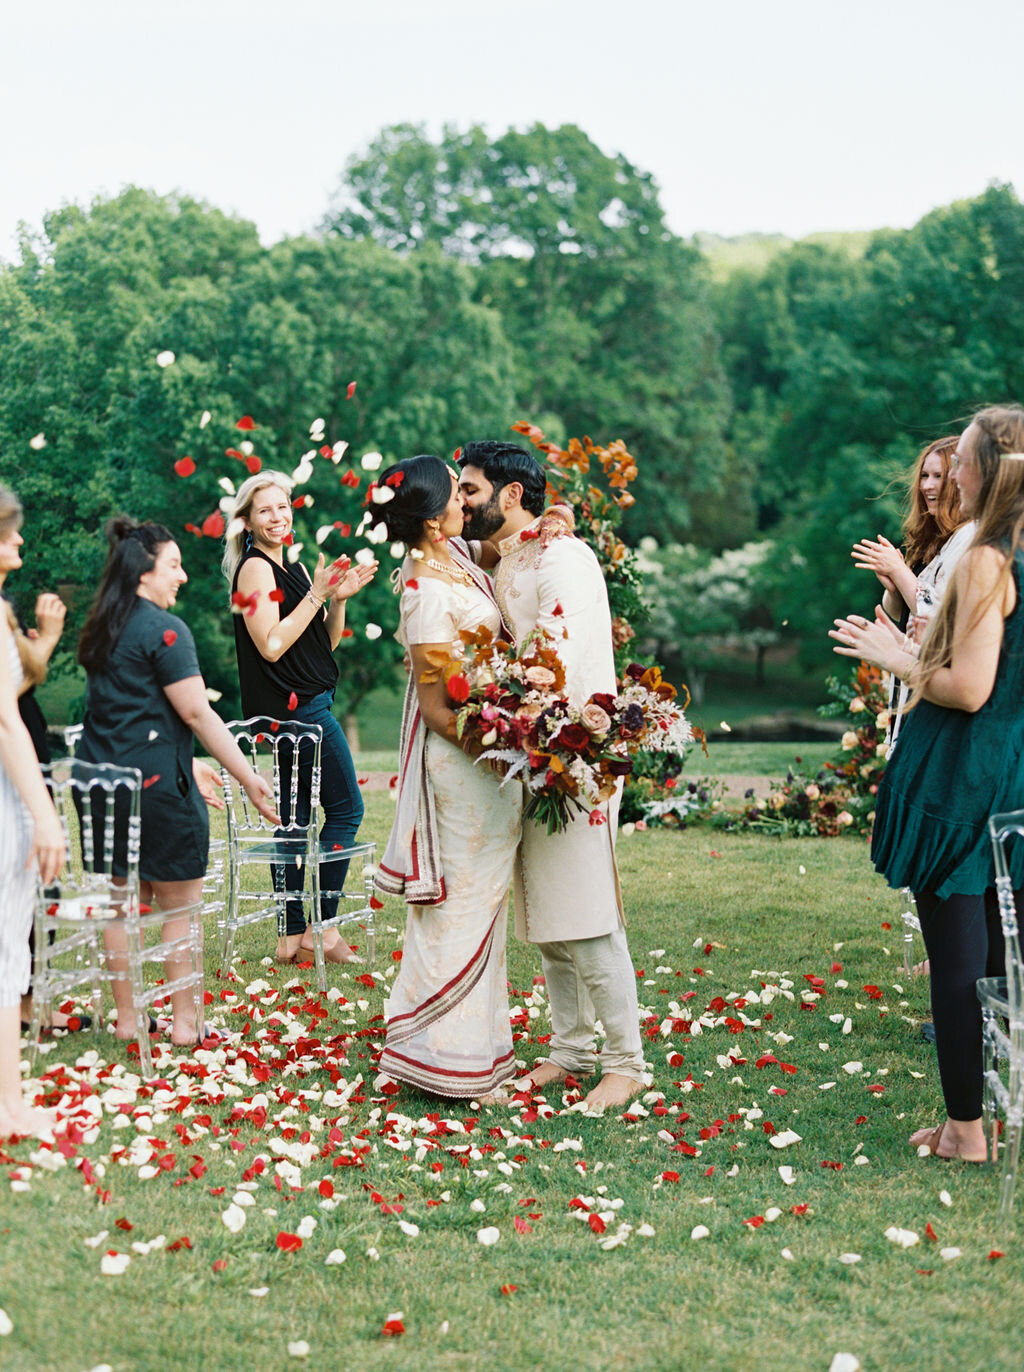 Freestanding wedding ceremony backdrop with lush greenery and bright flowers. Rose petal toss at the end of the wedding ceremony.Nashville wedding floral design by Rosemary & Finch.